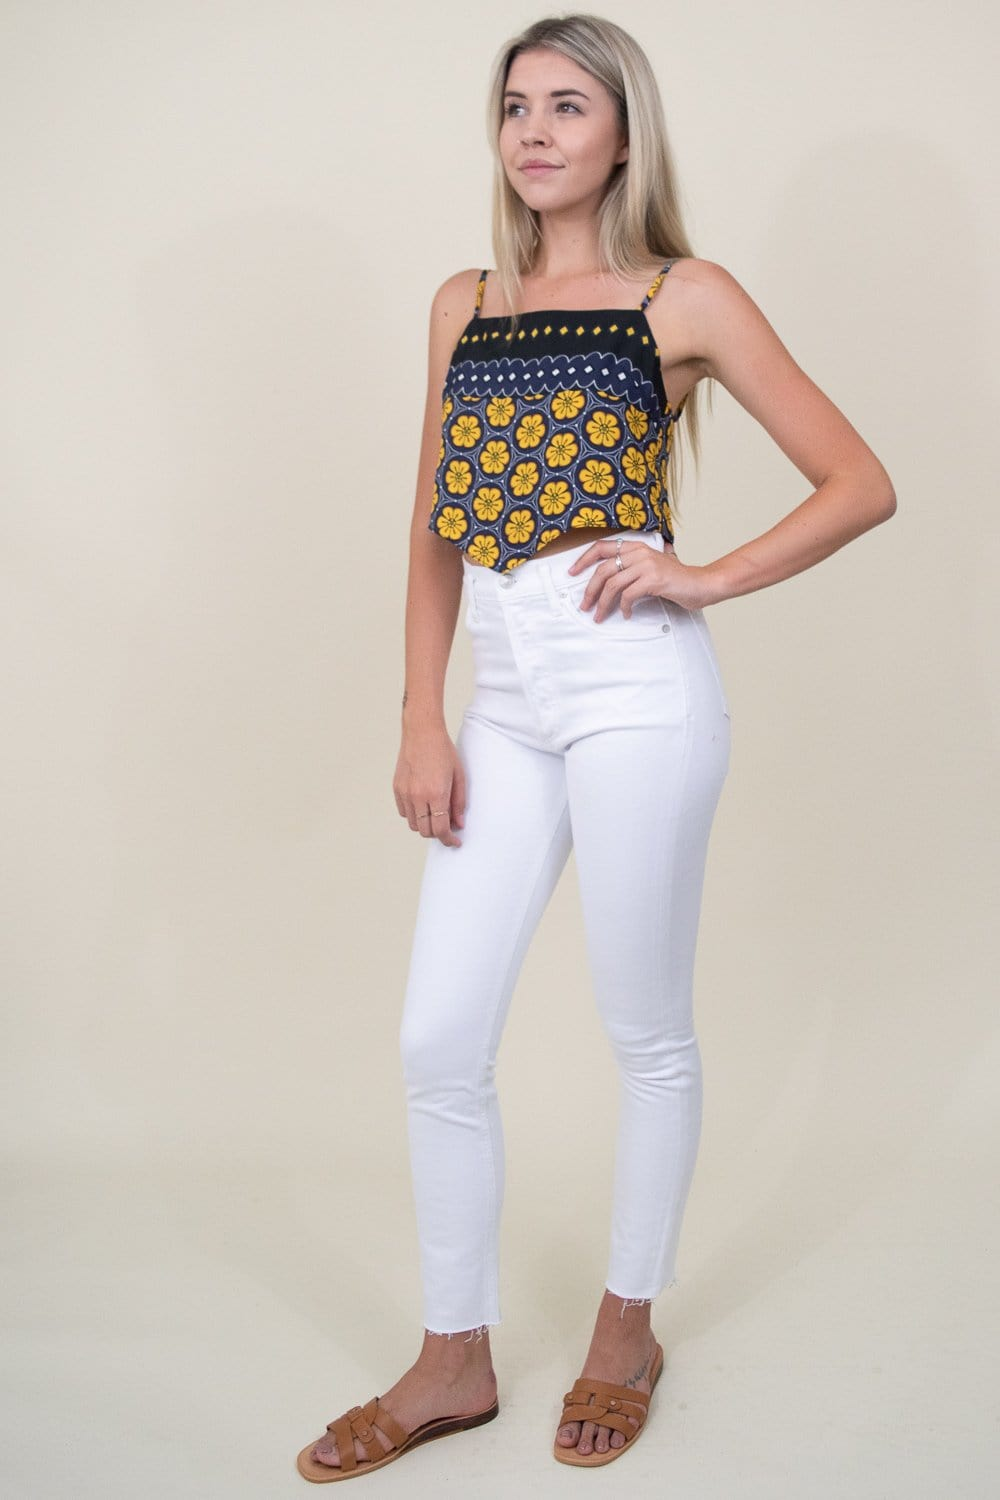 J.O.A. Border Print Scarf Top in Yellow Multi